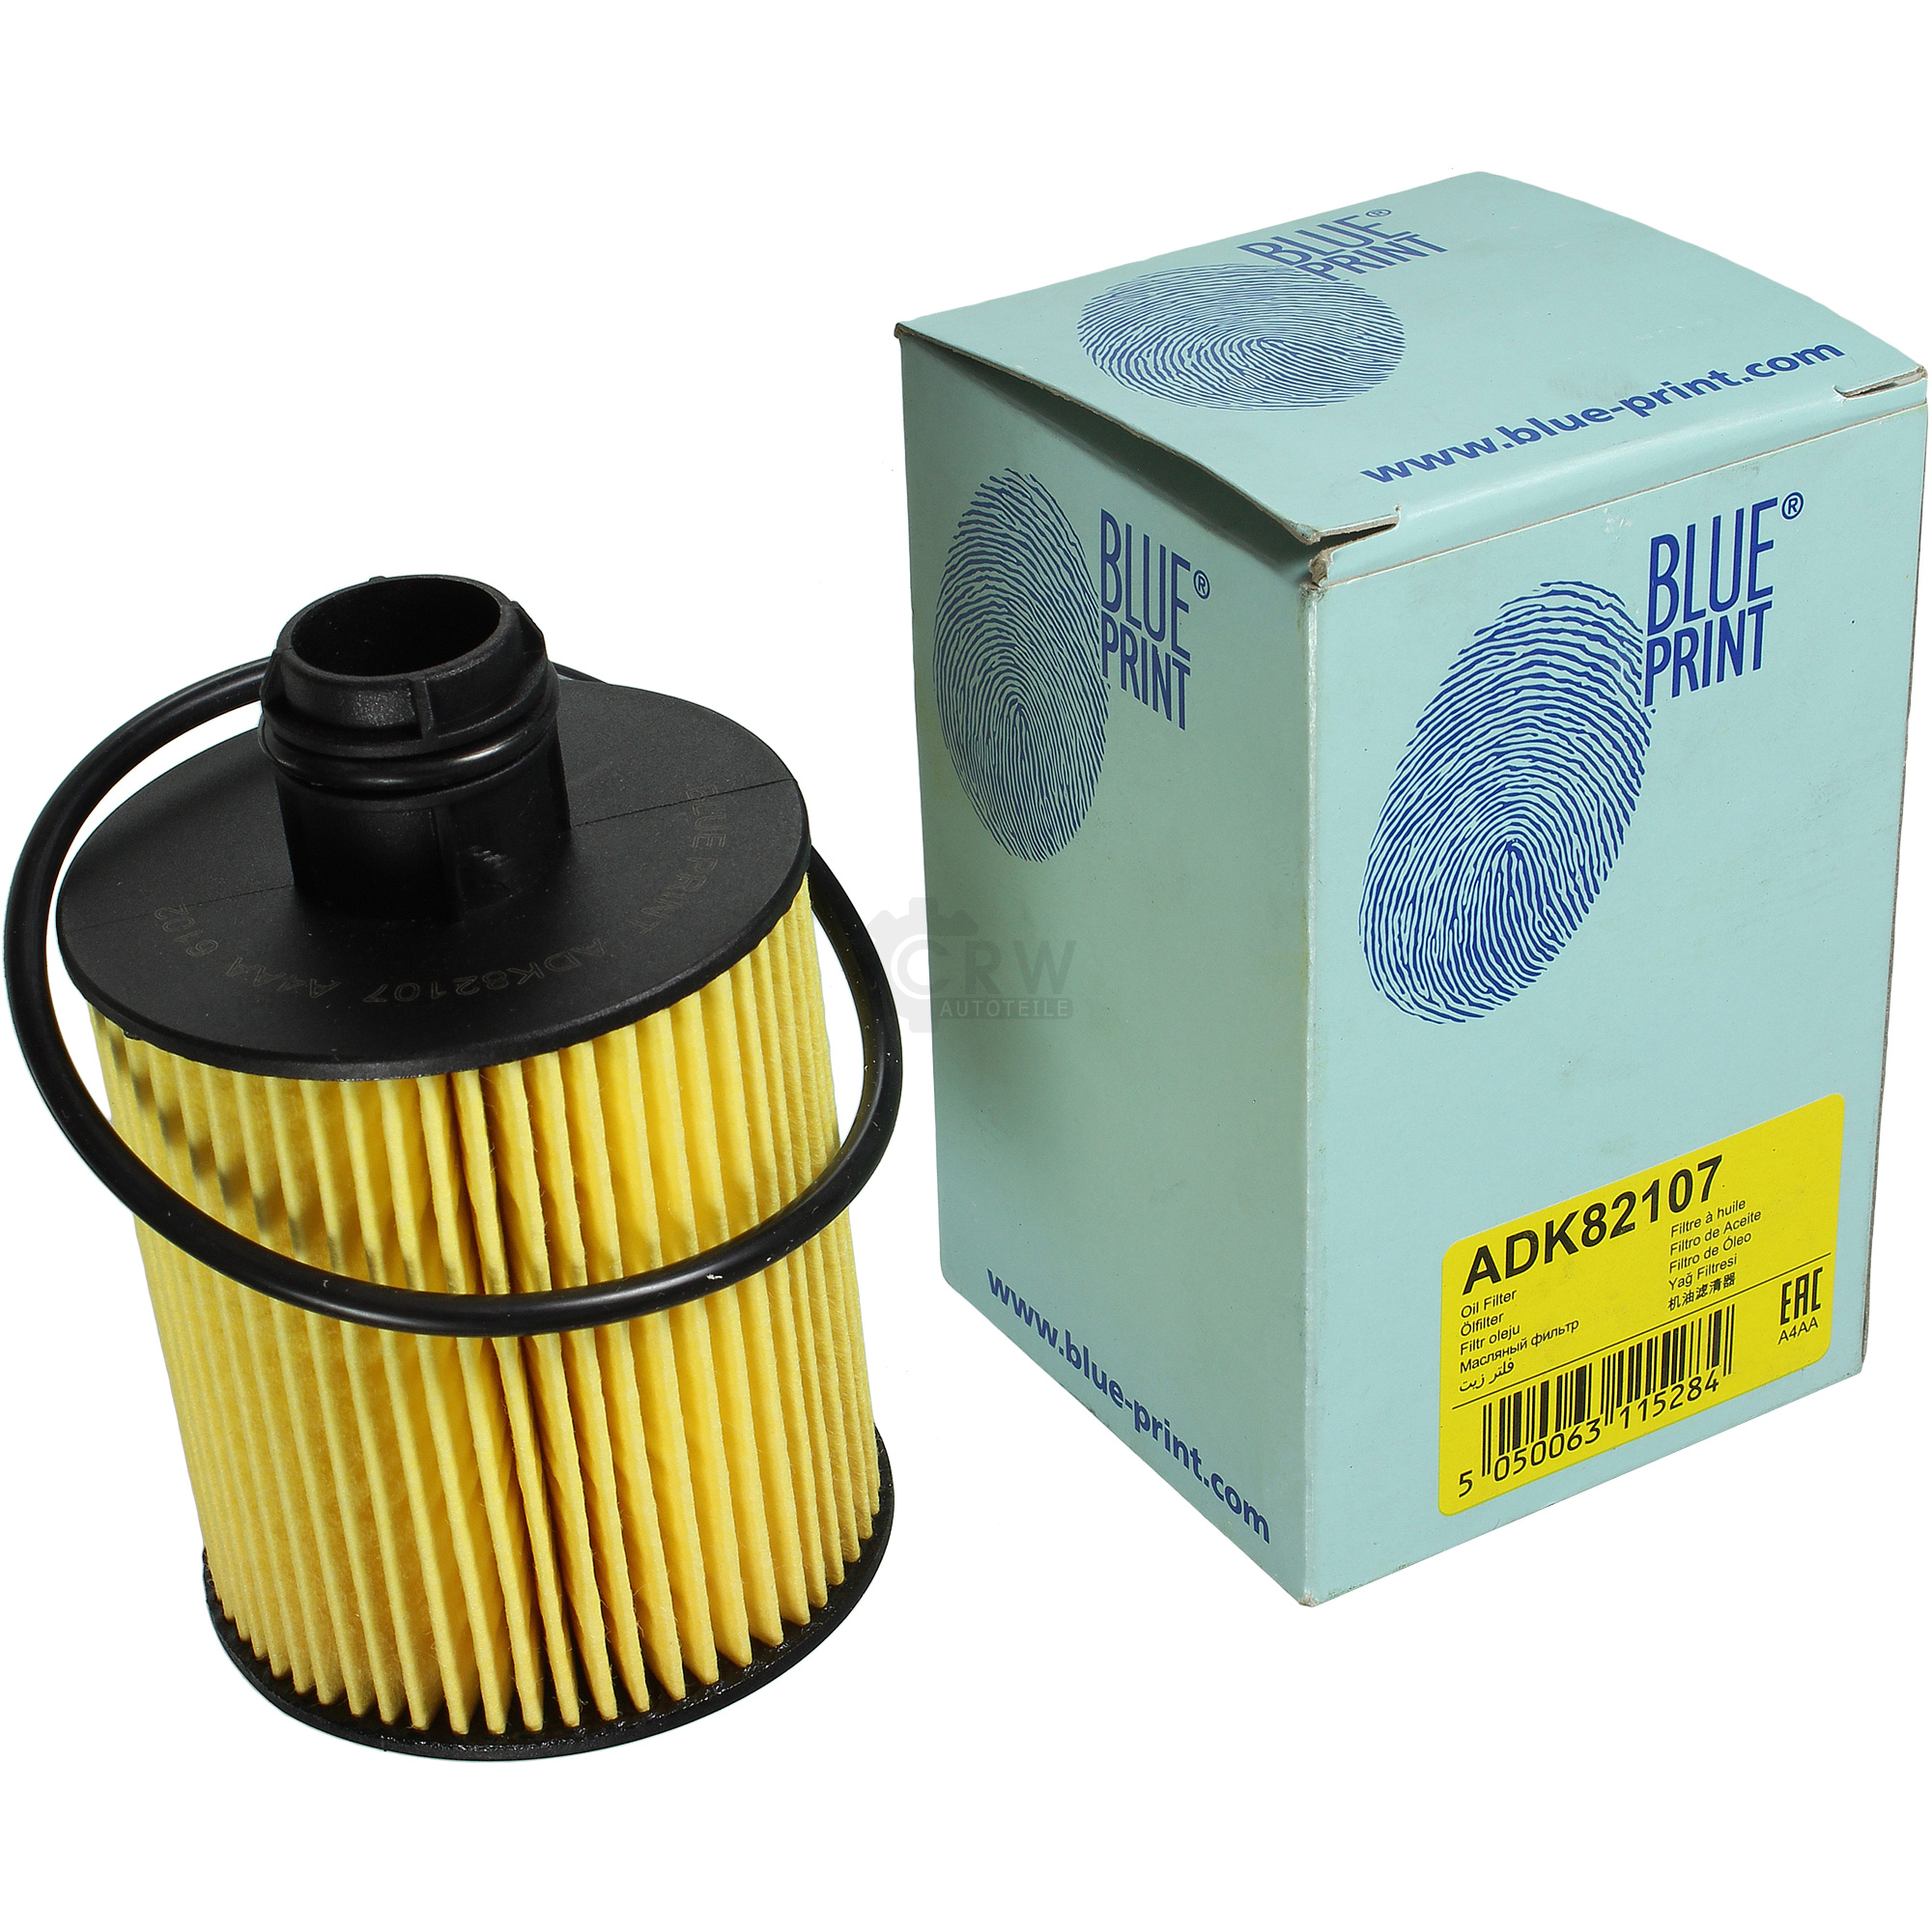 Genuine Blue Print Oil Filter with Gasket ADK82107 Oil Filter Oil | eBay